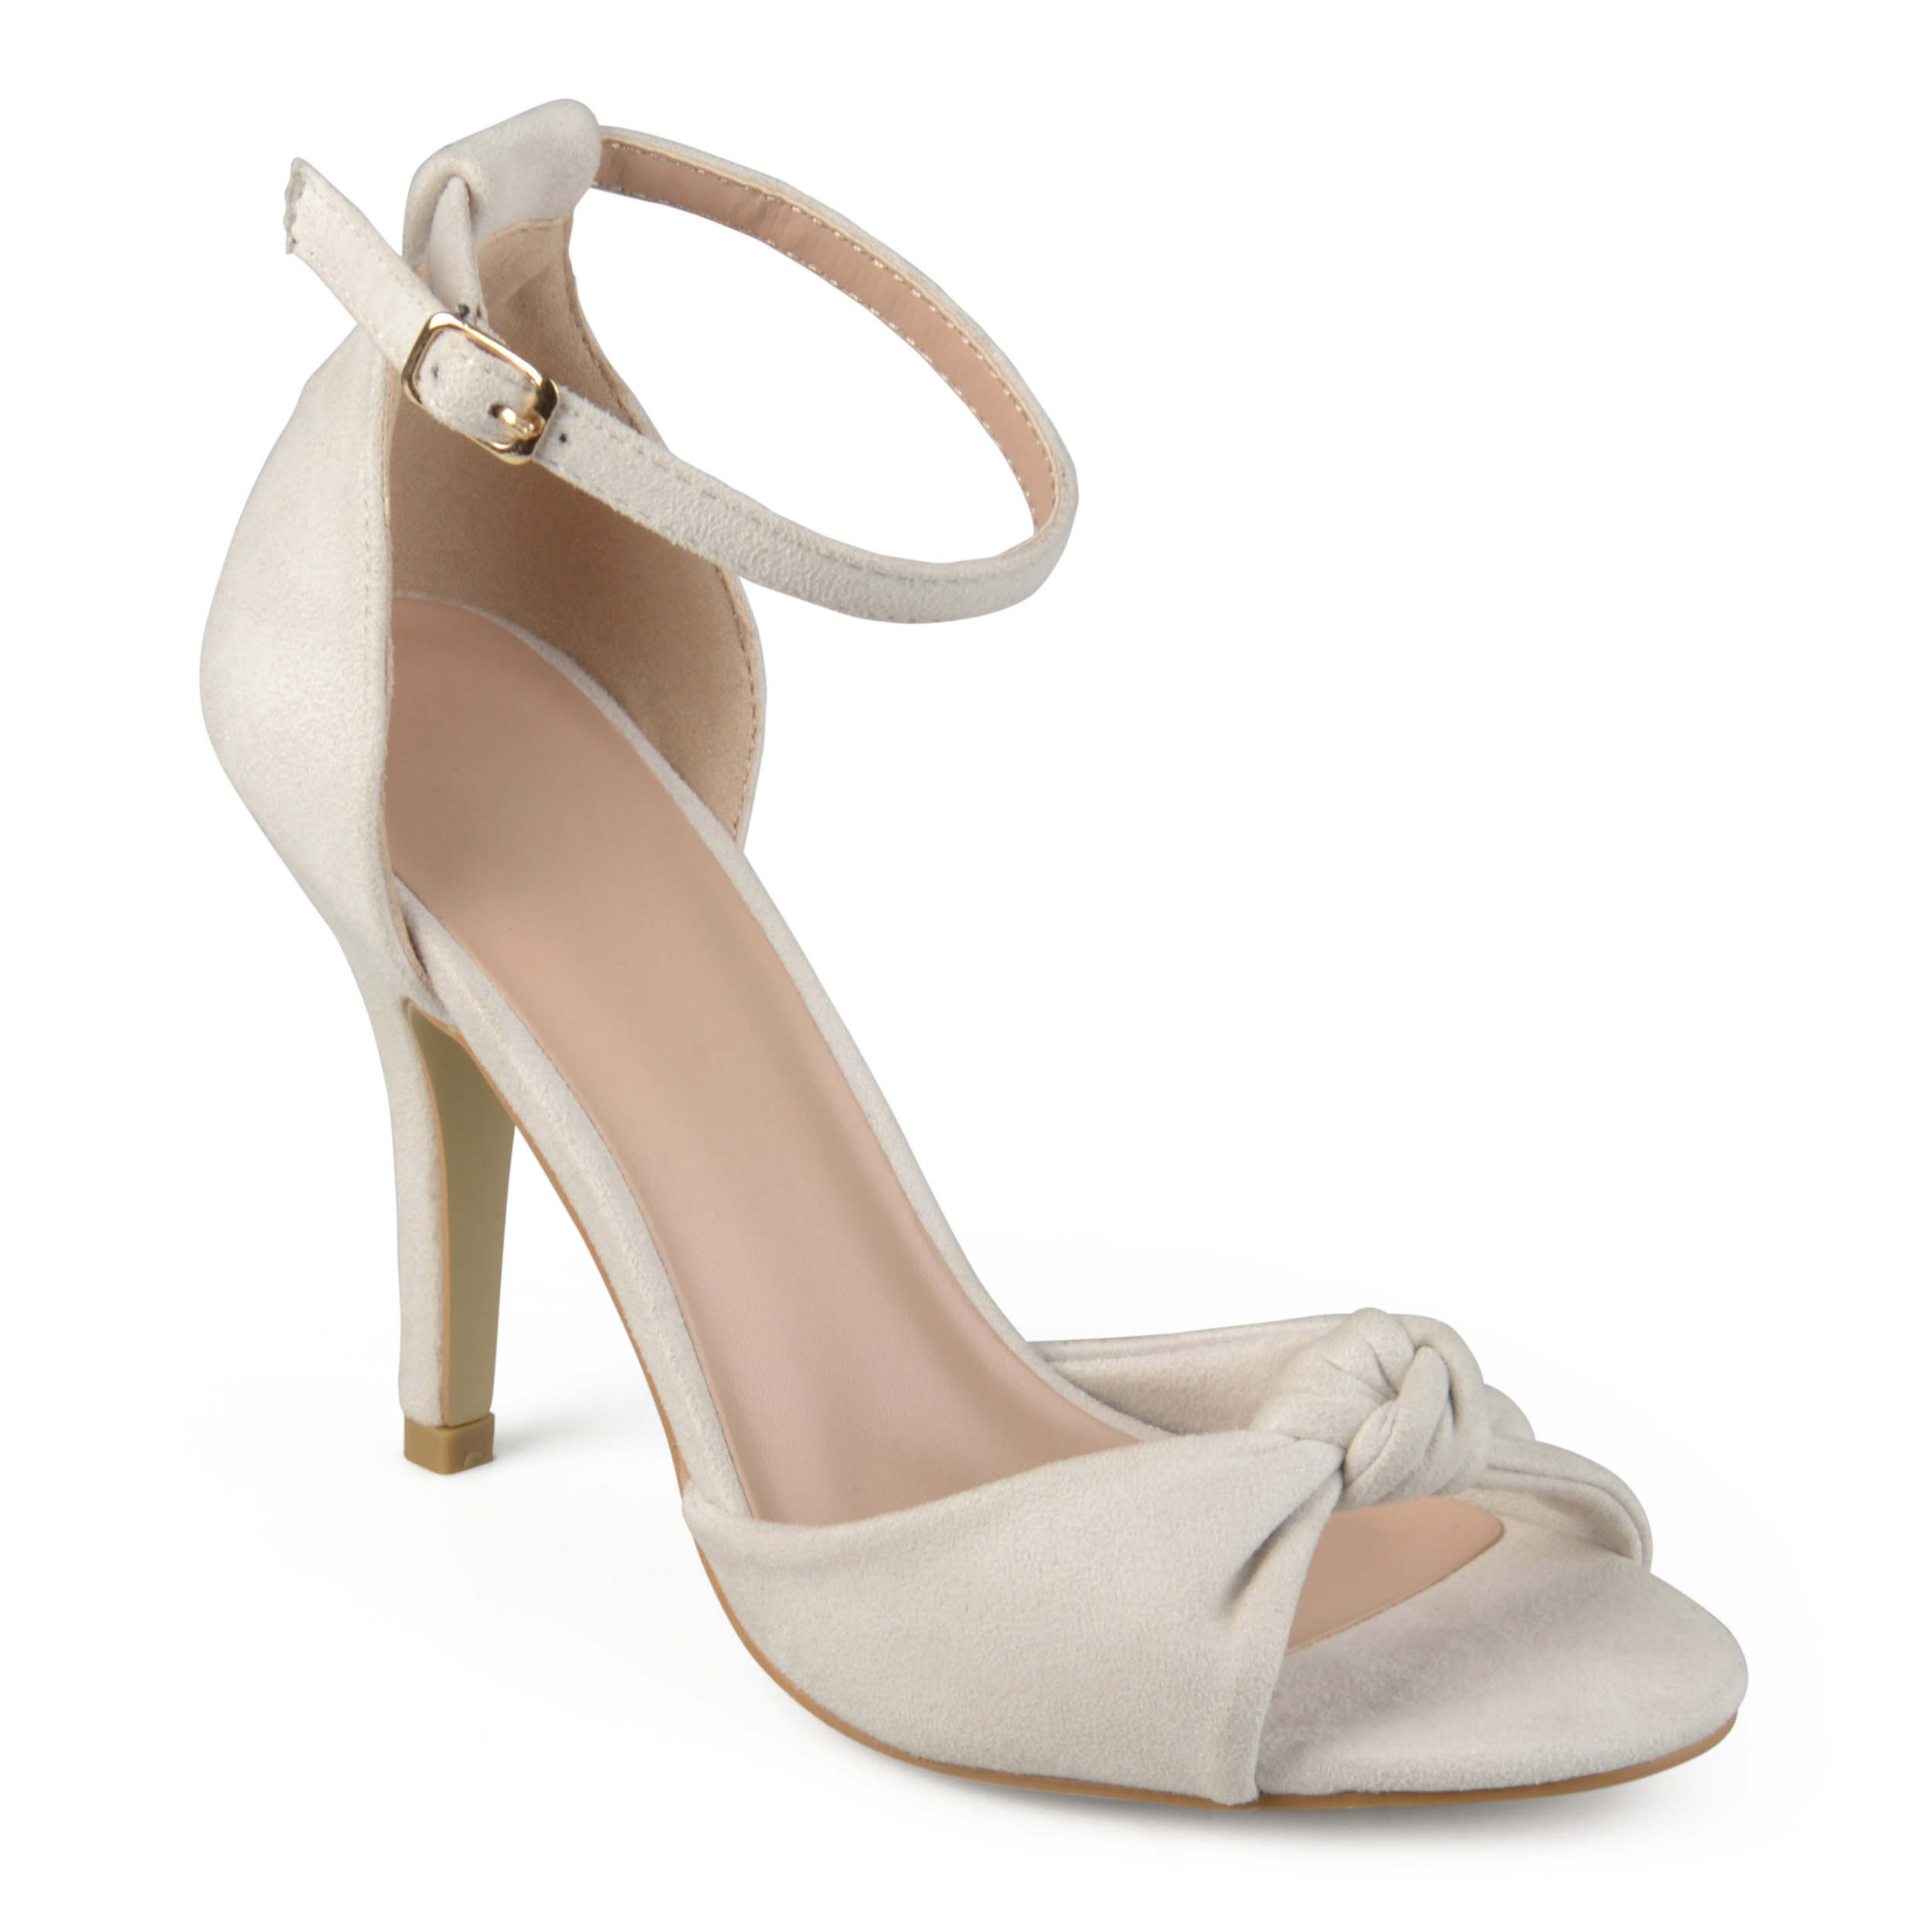 Brinley Co. Womens Faux Suede Knot Ankle Strap High Heels